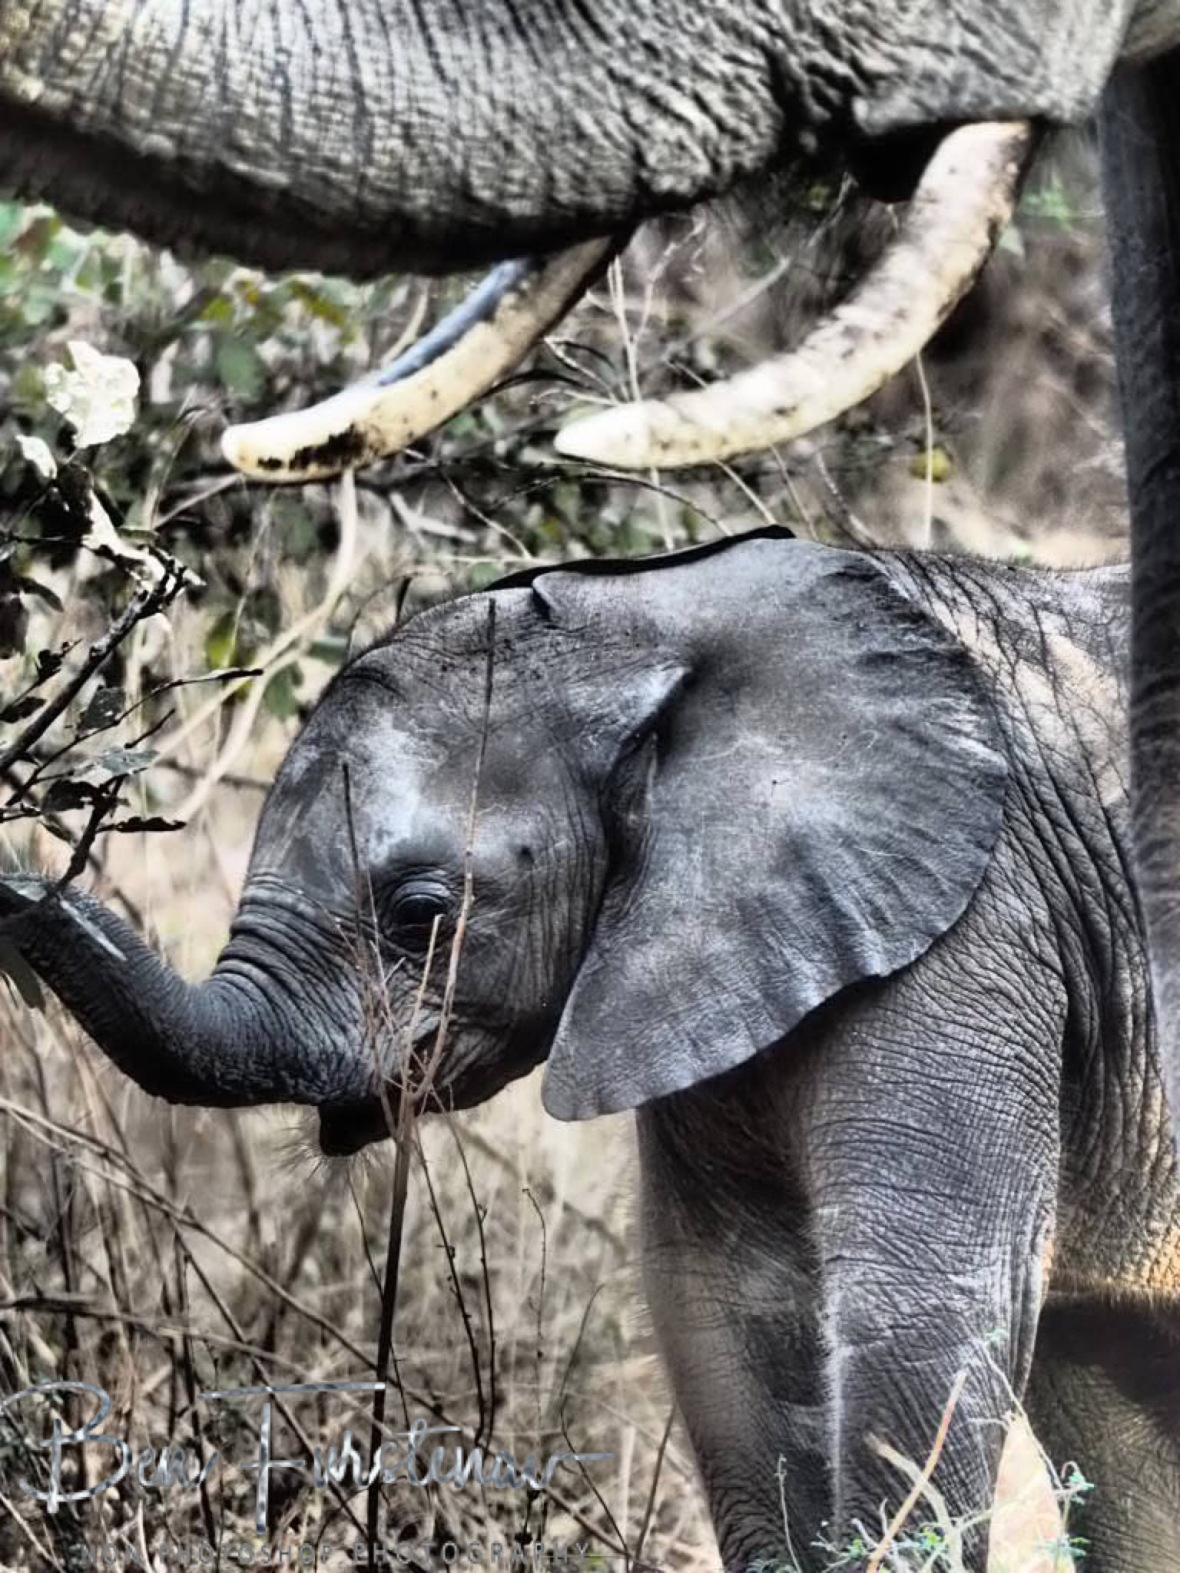 Large and small trunk, South Luangwa National Park, Zambia